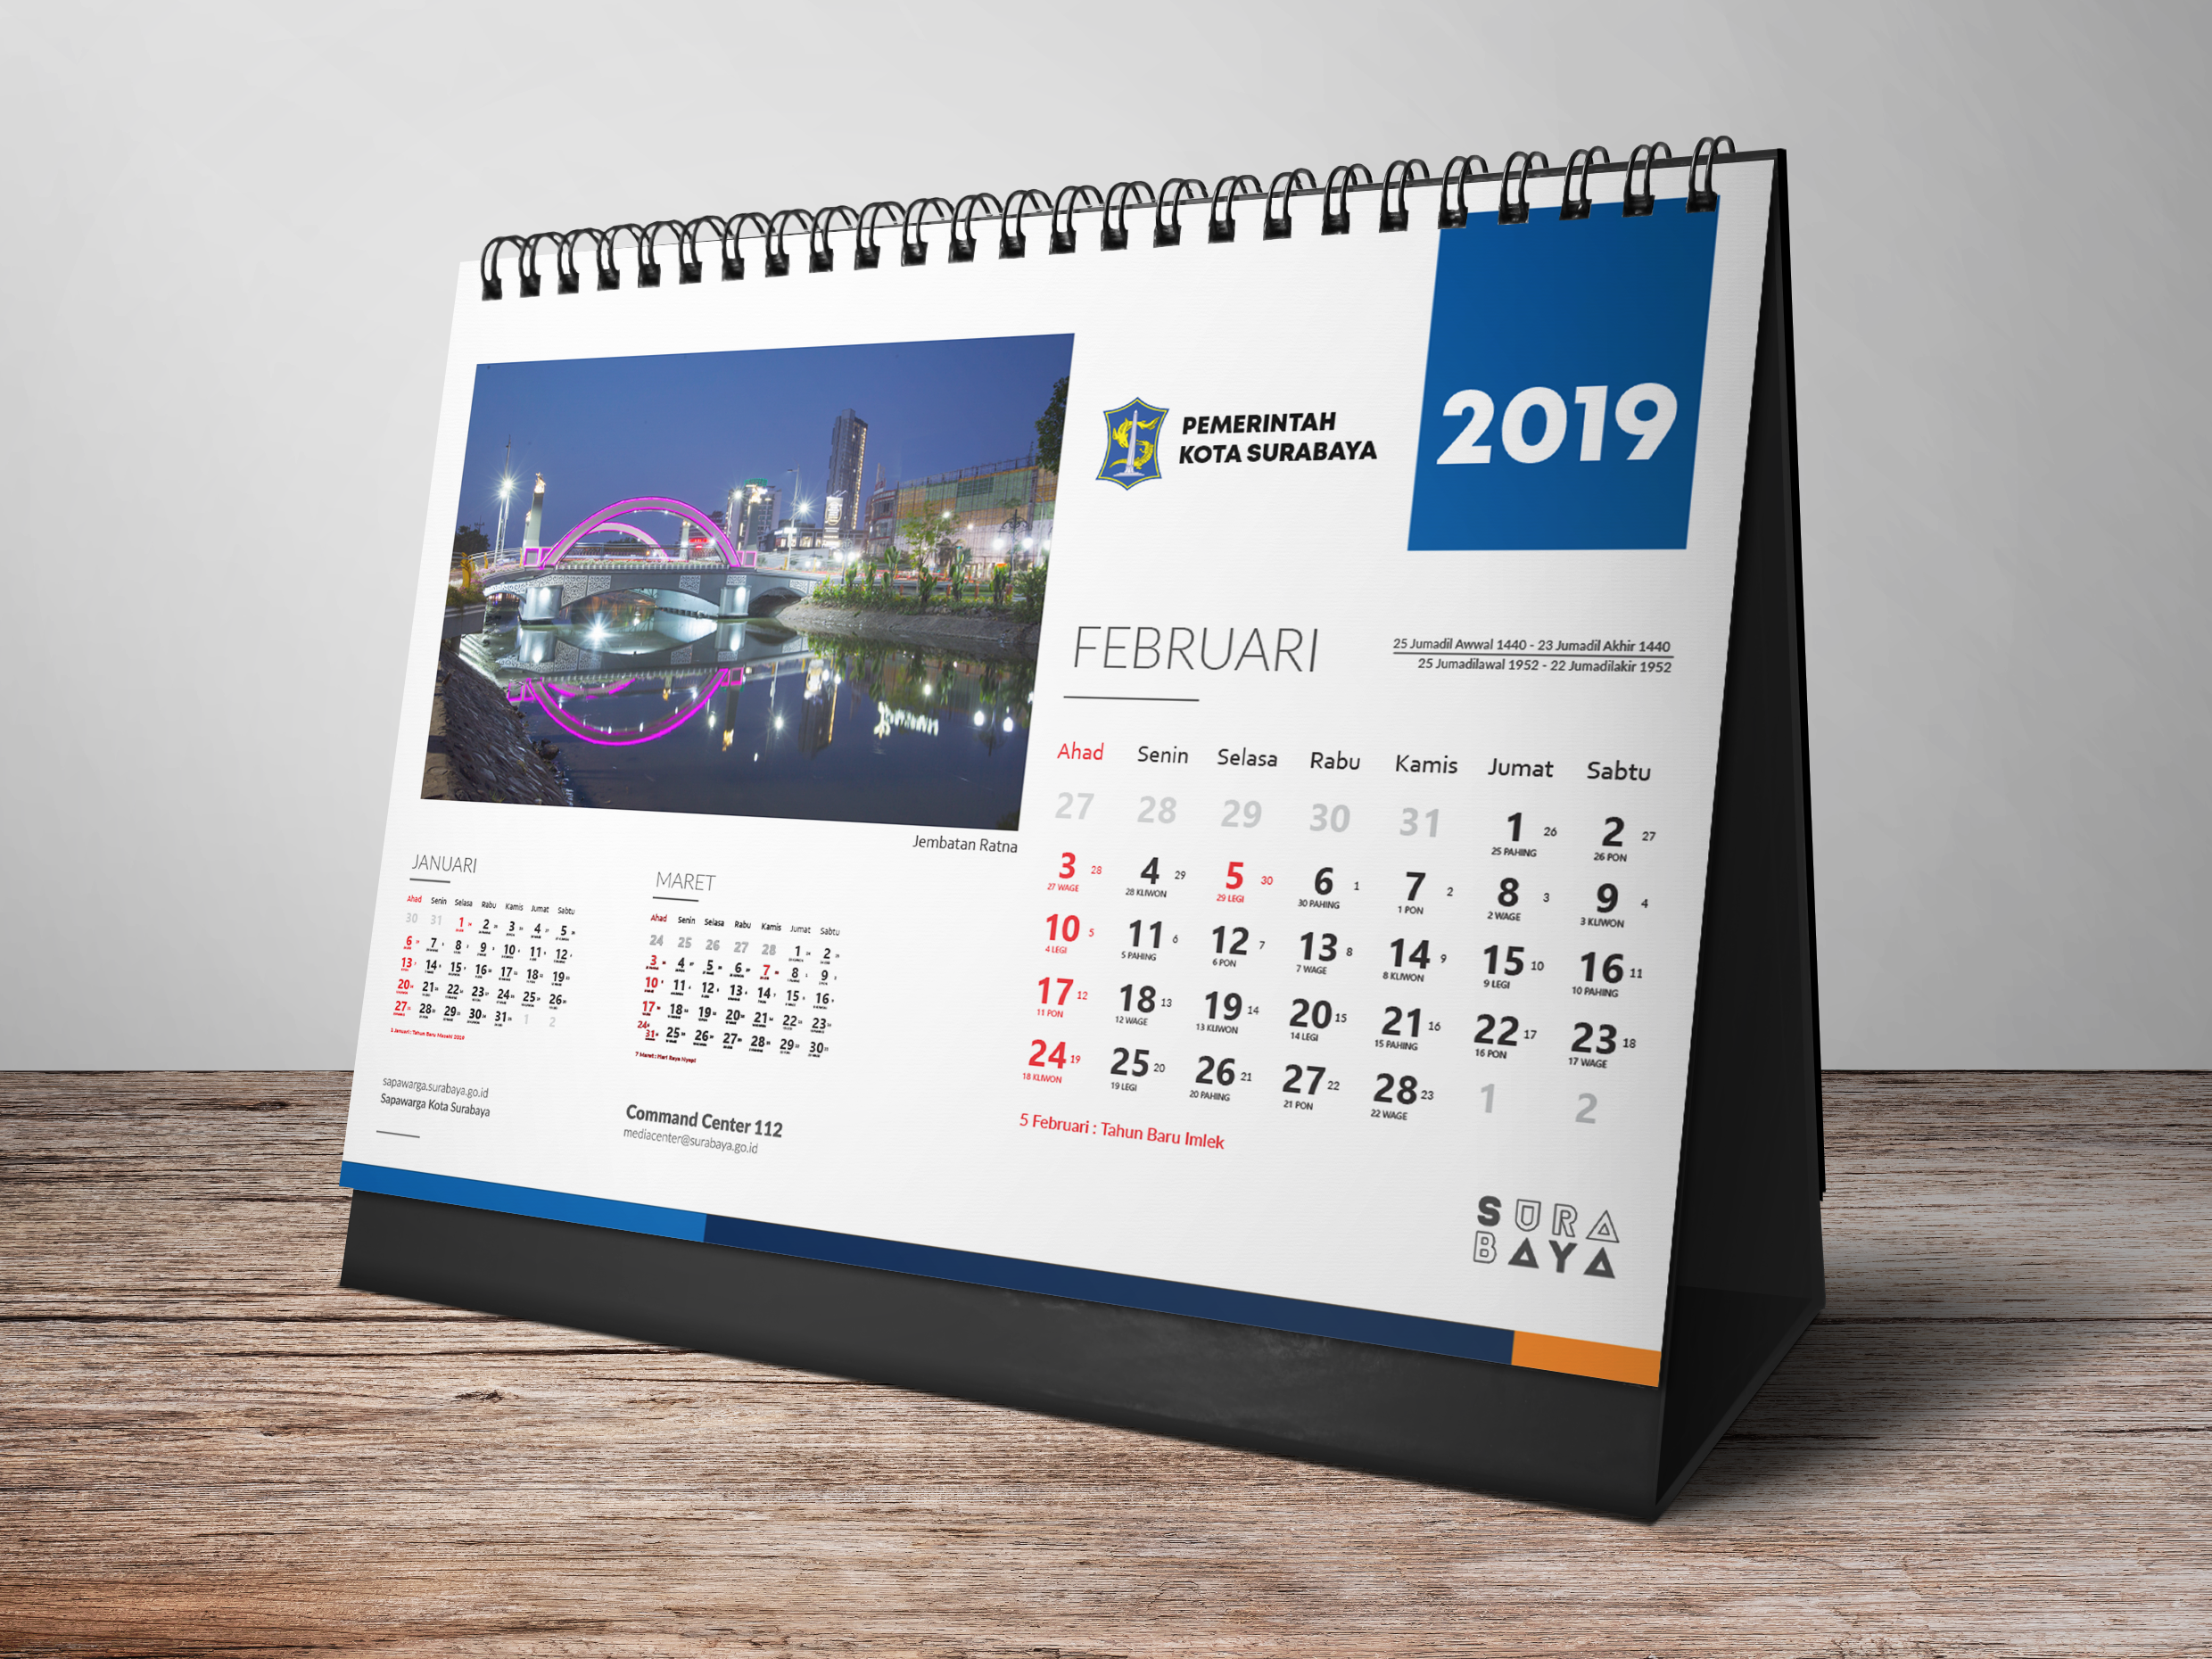 Surabaya Desk Calendar 2019 by Nadia Ningtias on Dribbble